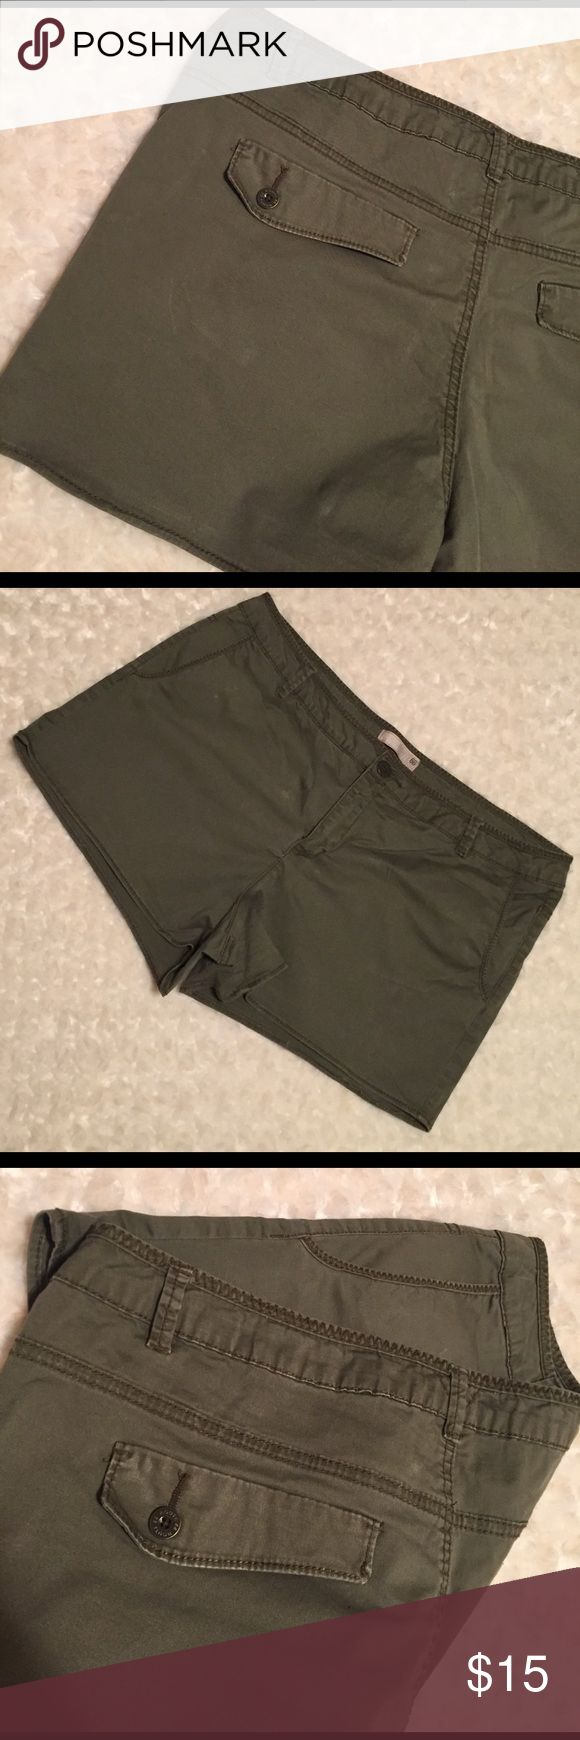 "Army Green Booty Shorts Worn once. Size 18 misses. Nice stretch. About a 1-2"" inseam. Classic army green color. NO TRADES Route 66 Shorts"